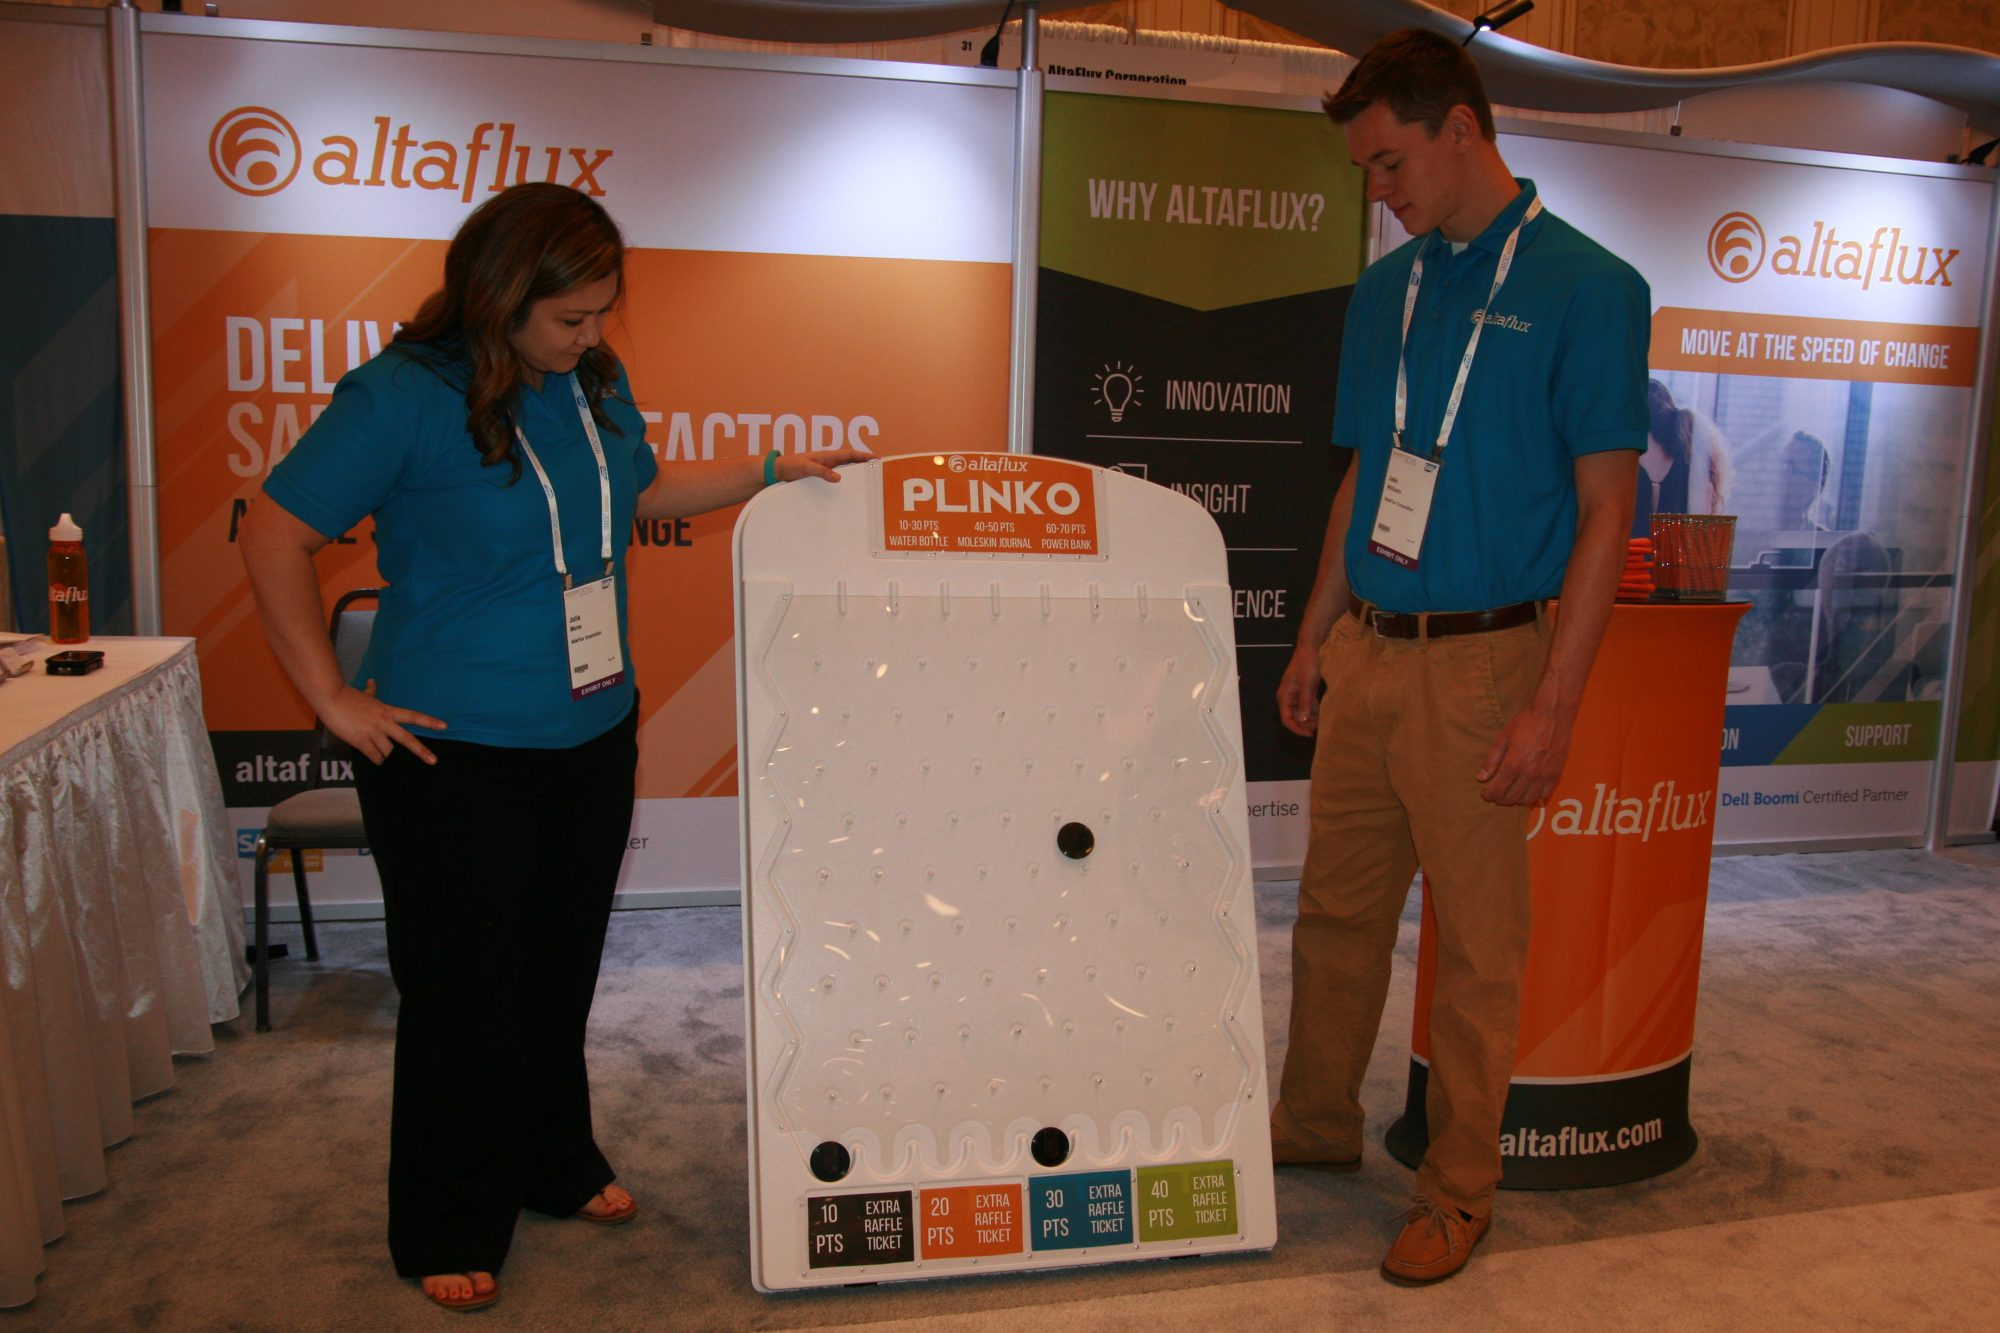 SAP Slideshow 9 - Plinko